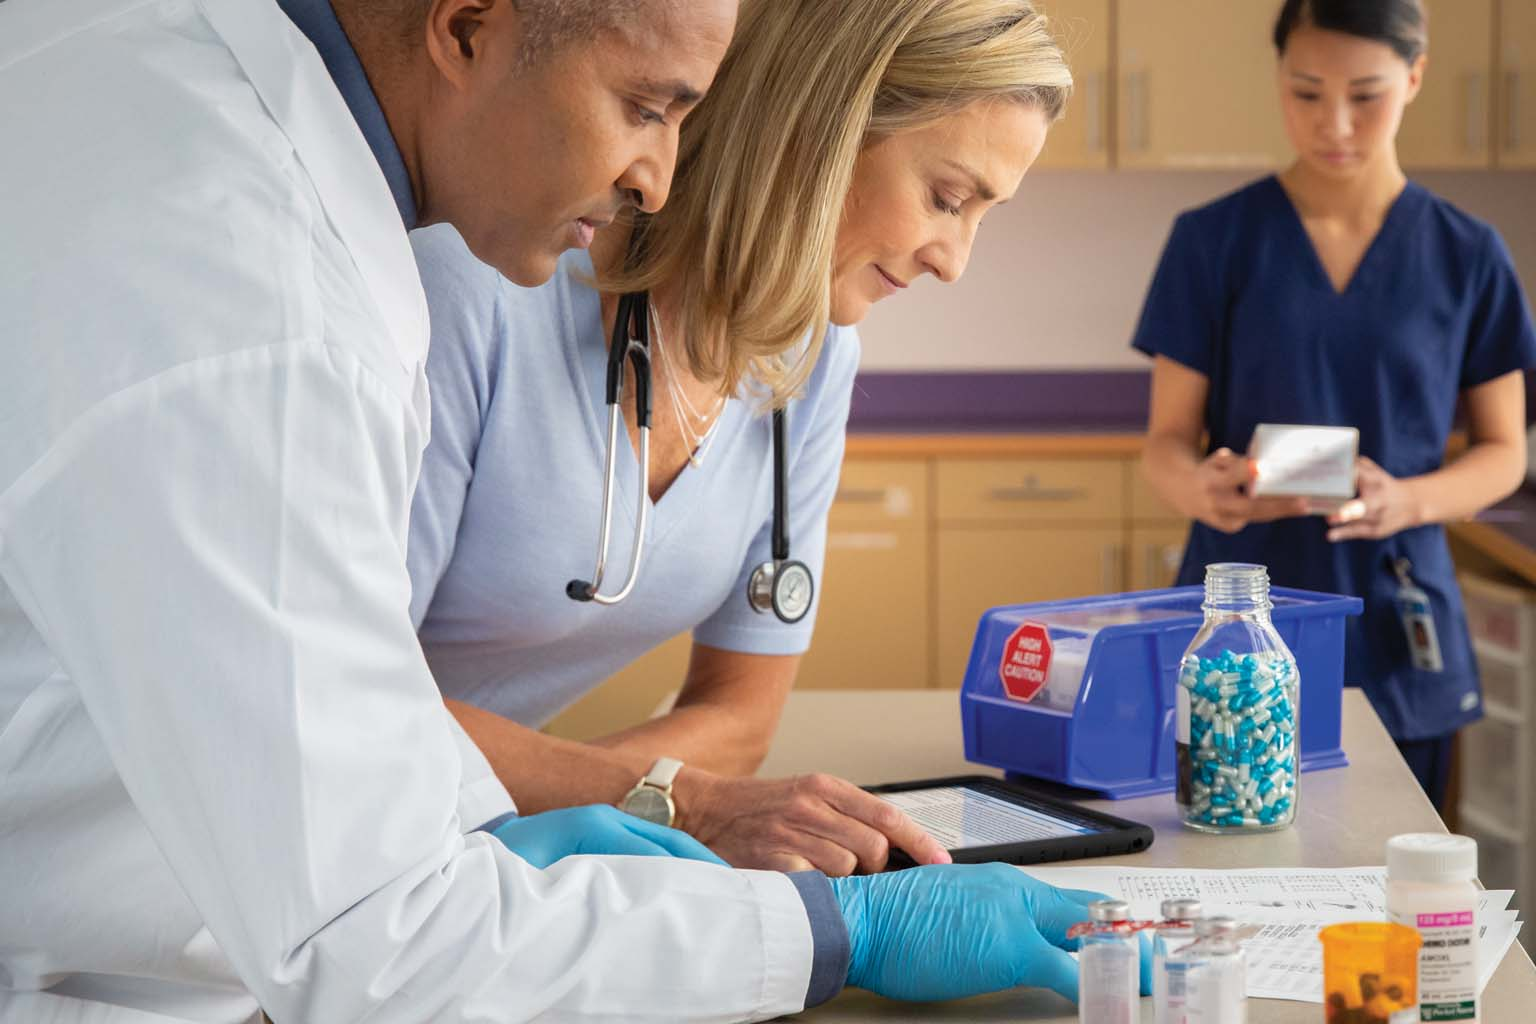 pharmacist with doctor and nurse in lab viewing tablet